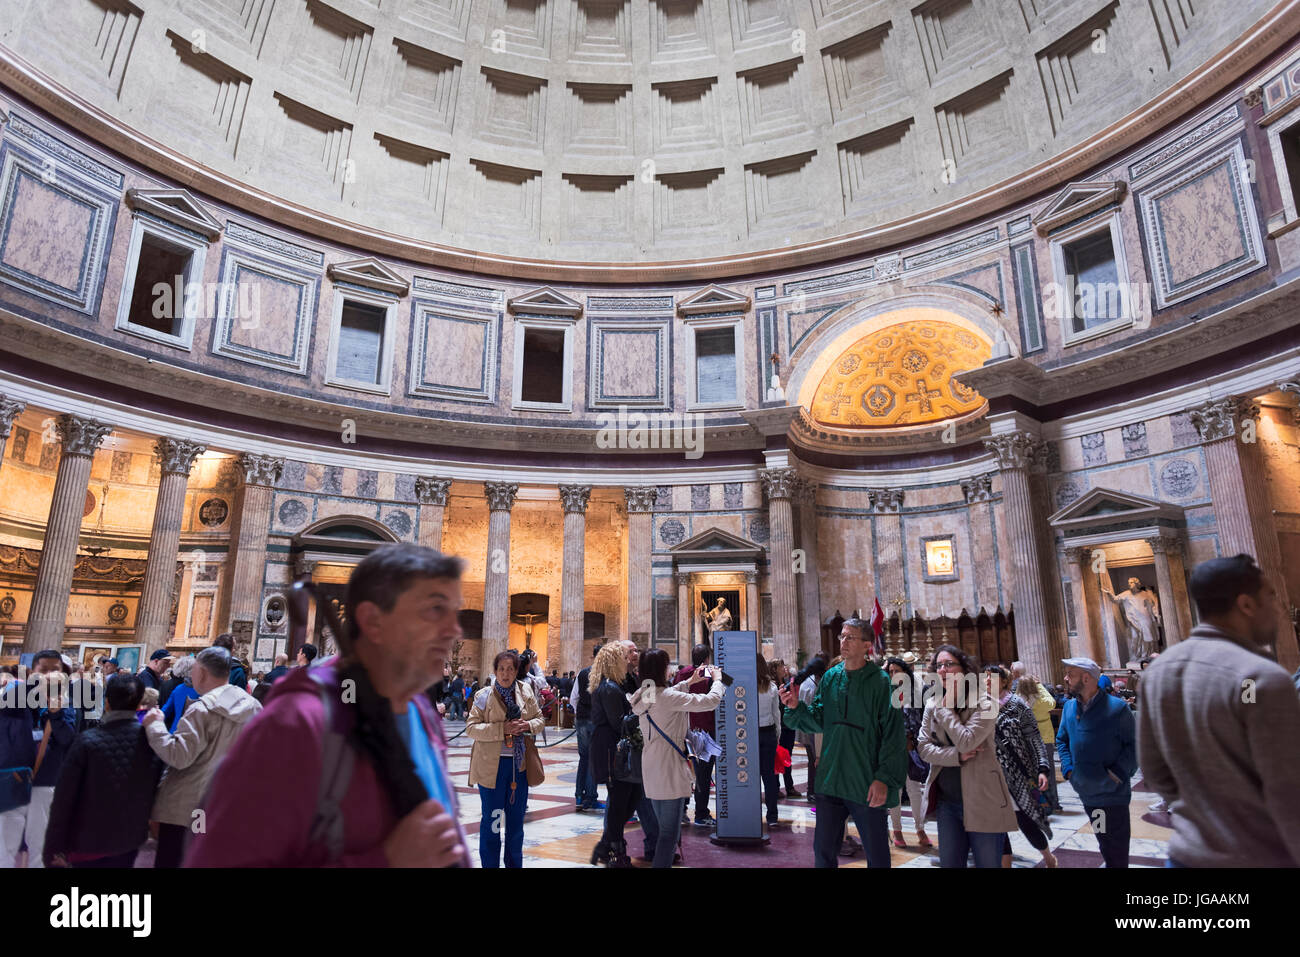 Rome, Italy - October 01, 2015. The Pantheon is an ancient Roman building located in the historic center. Tourists - Stock Image